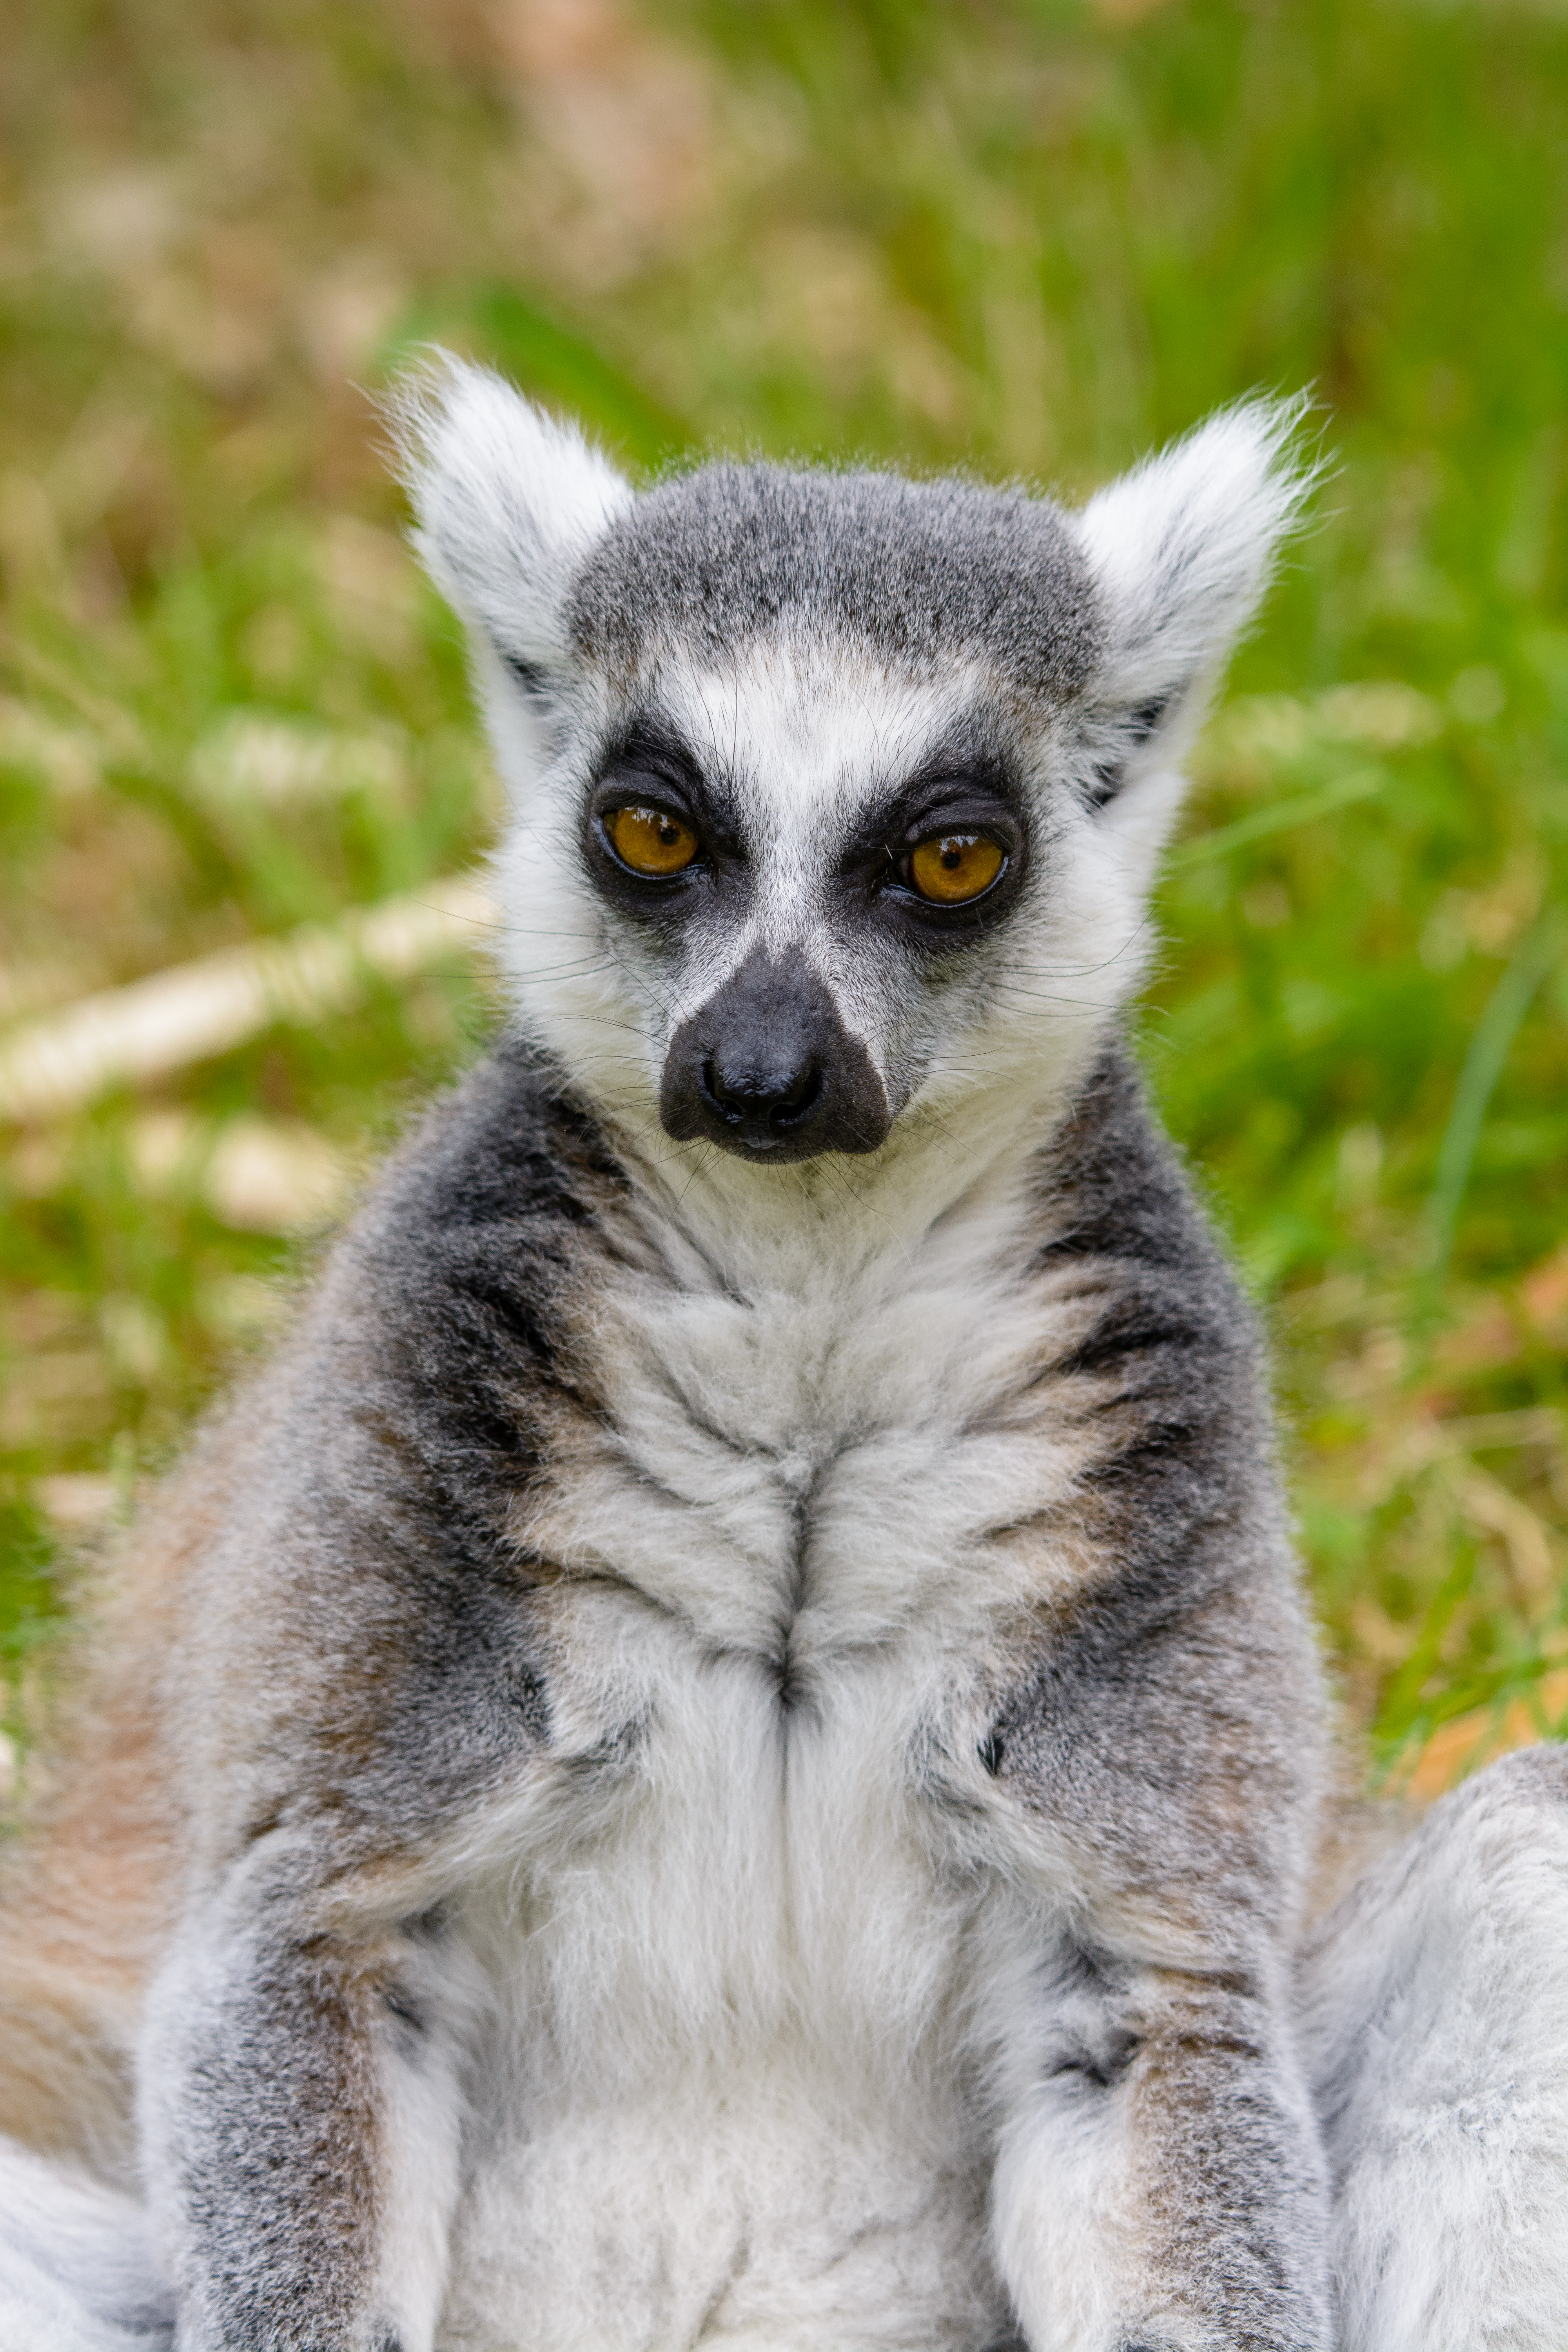 108623 download wallpaper Animals, Lemur, Sight, Opinion, Pensive screensavers and pictures for free